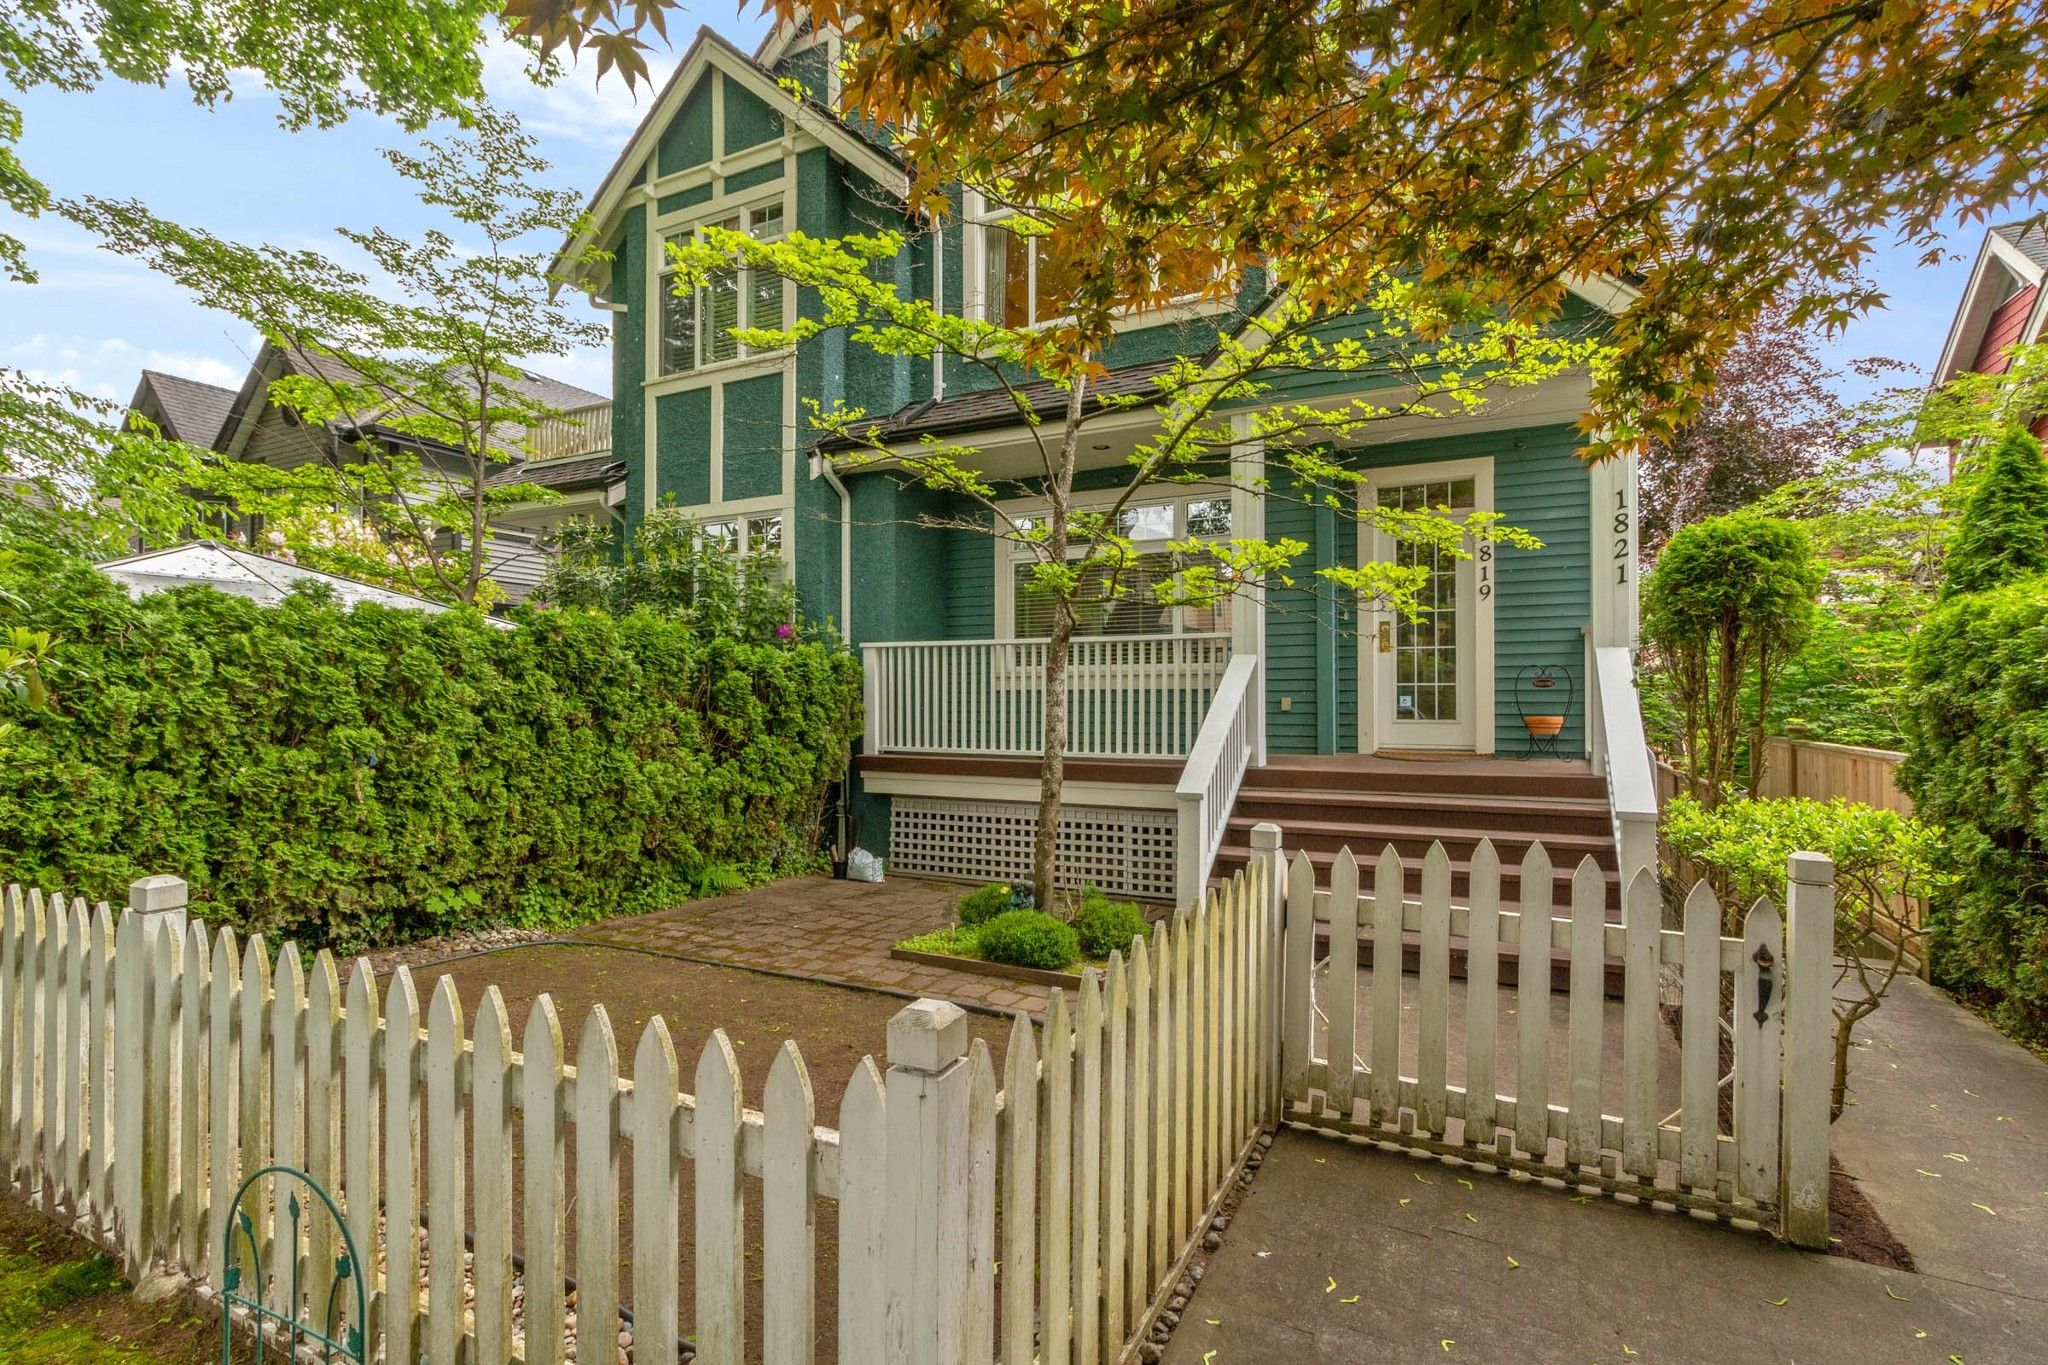 Main Photo: 1821 W 11TH Avenue in Vancouver: Kitsilano Townhouse for sale (Vancouver West)  : MLS®# R2586035